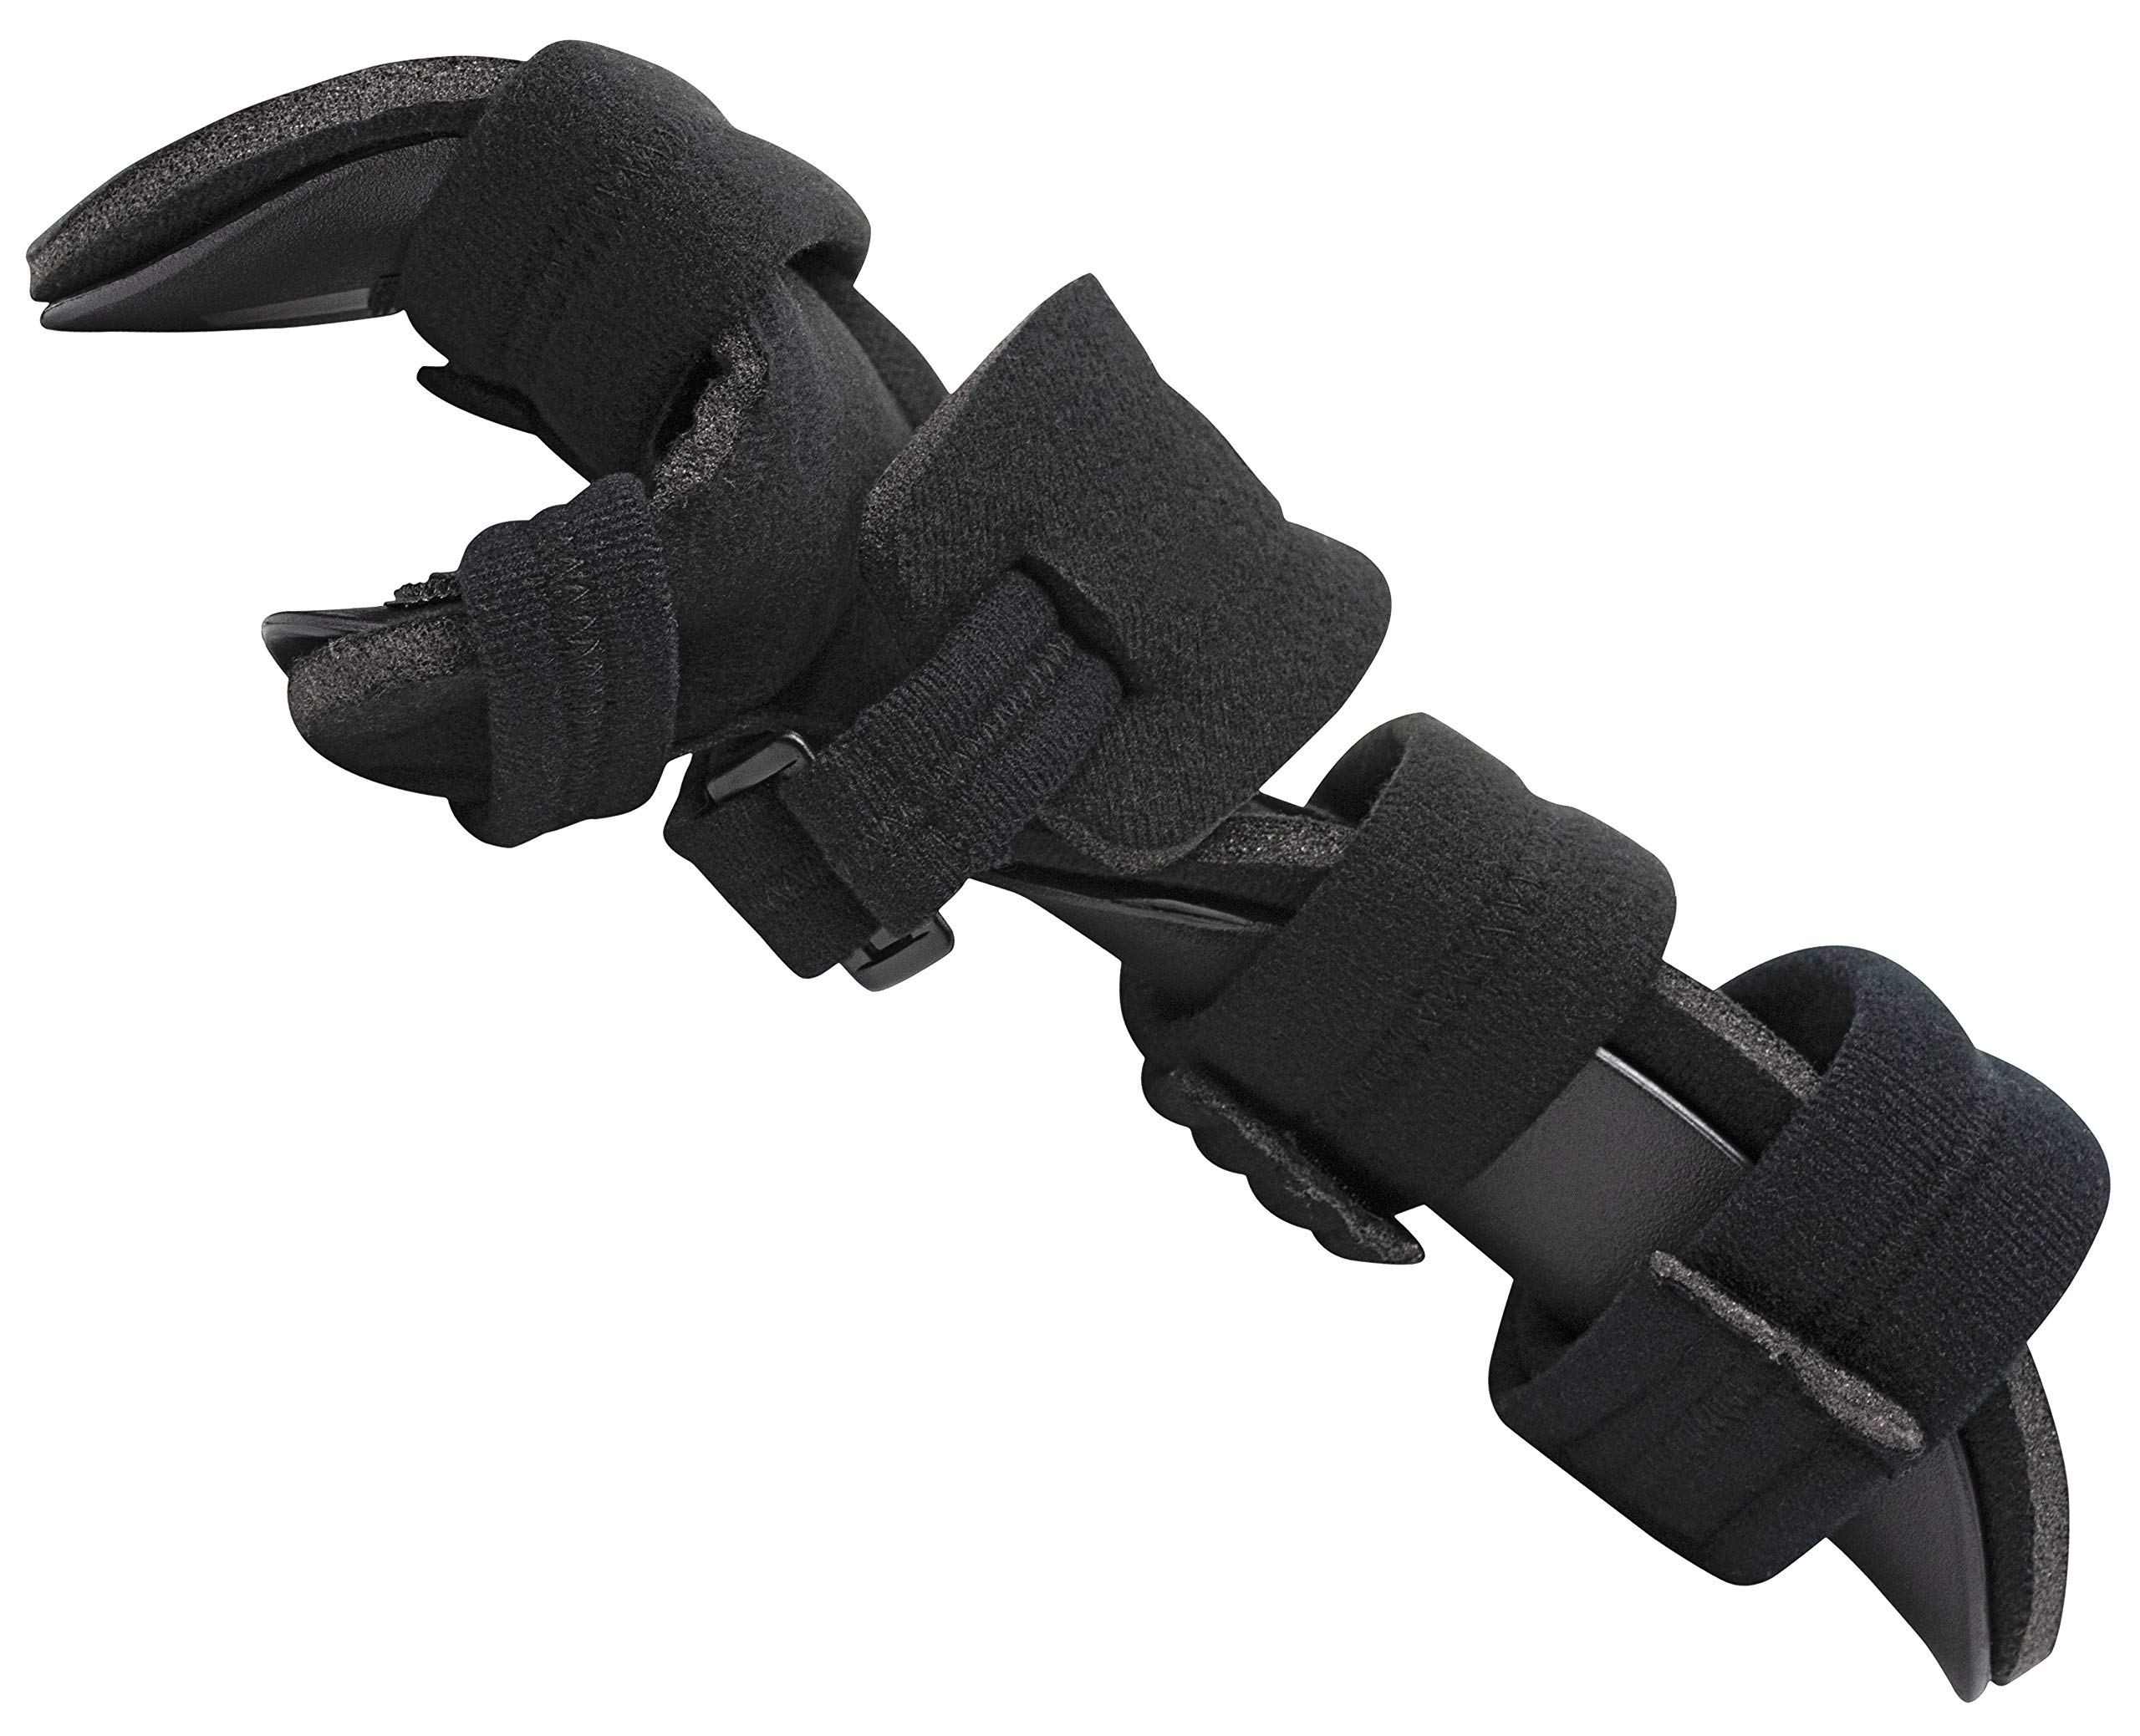 Stroke Hand Splint- Soft Resting Hand Splint for Flexion Contractures, Comfortably Stretch and Rest Hands for Long Term Ease with Functional Hand Splint, an American Heritage Industries(Right, Medium) by American Heritage Industries (Image #4)